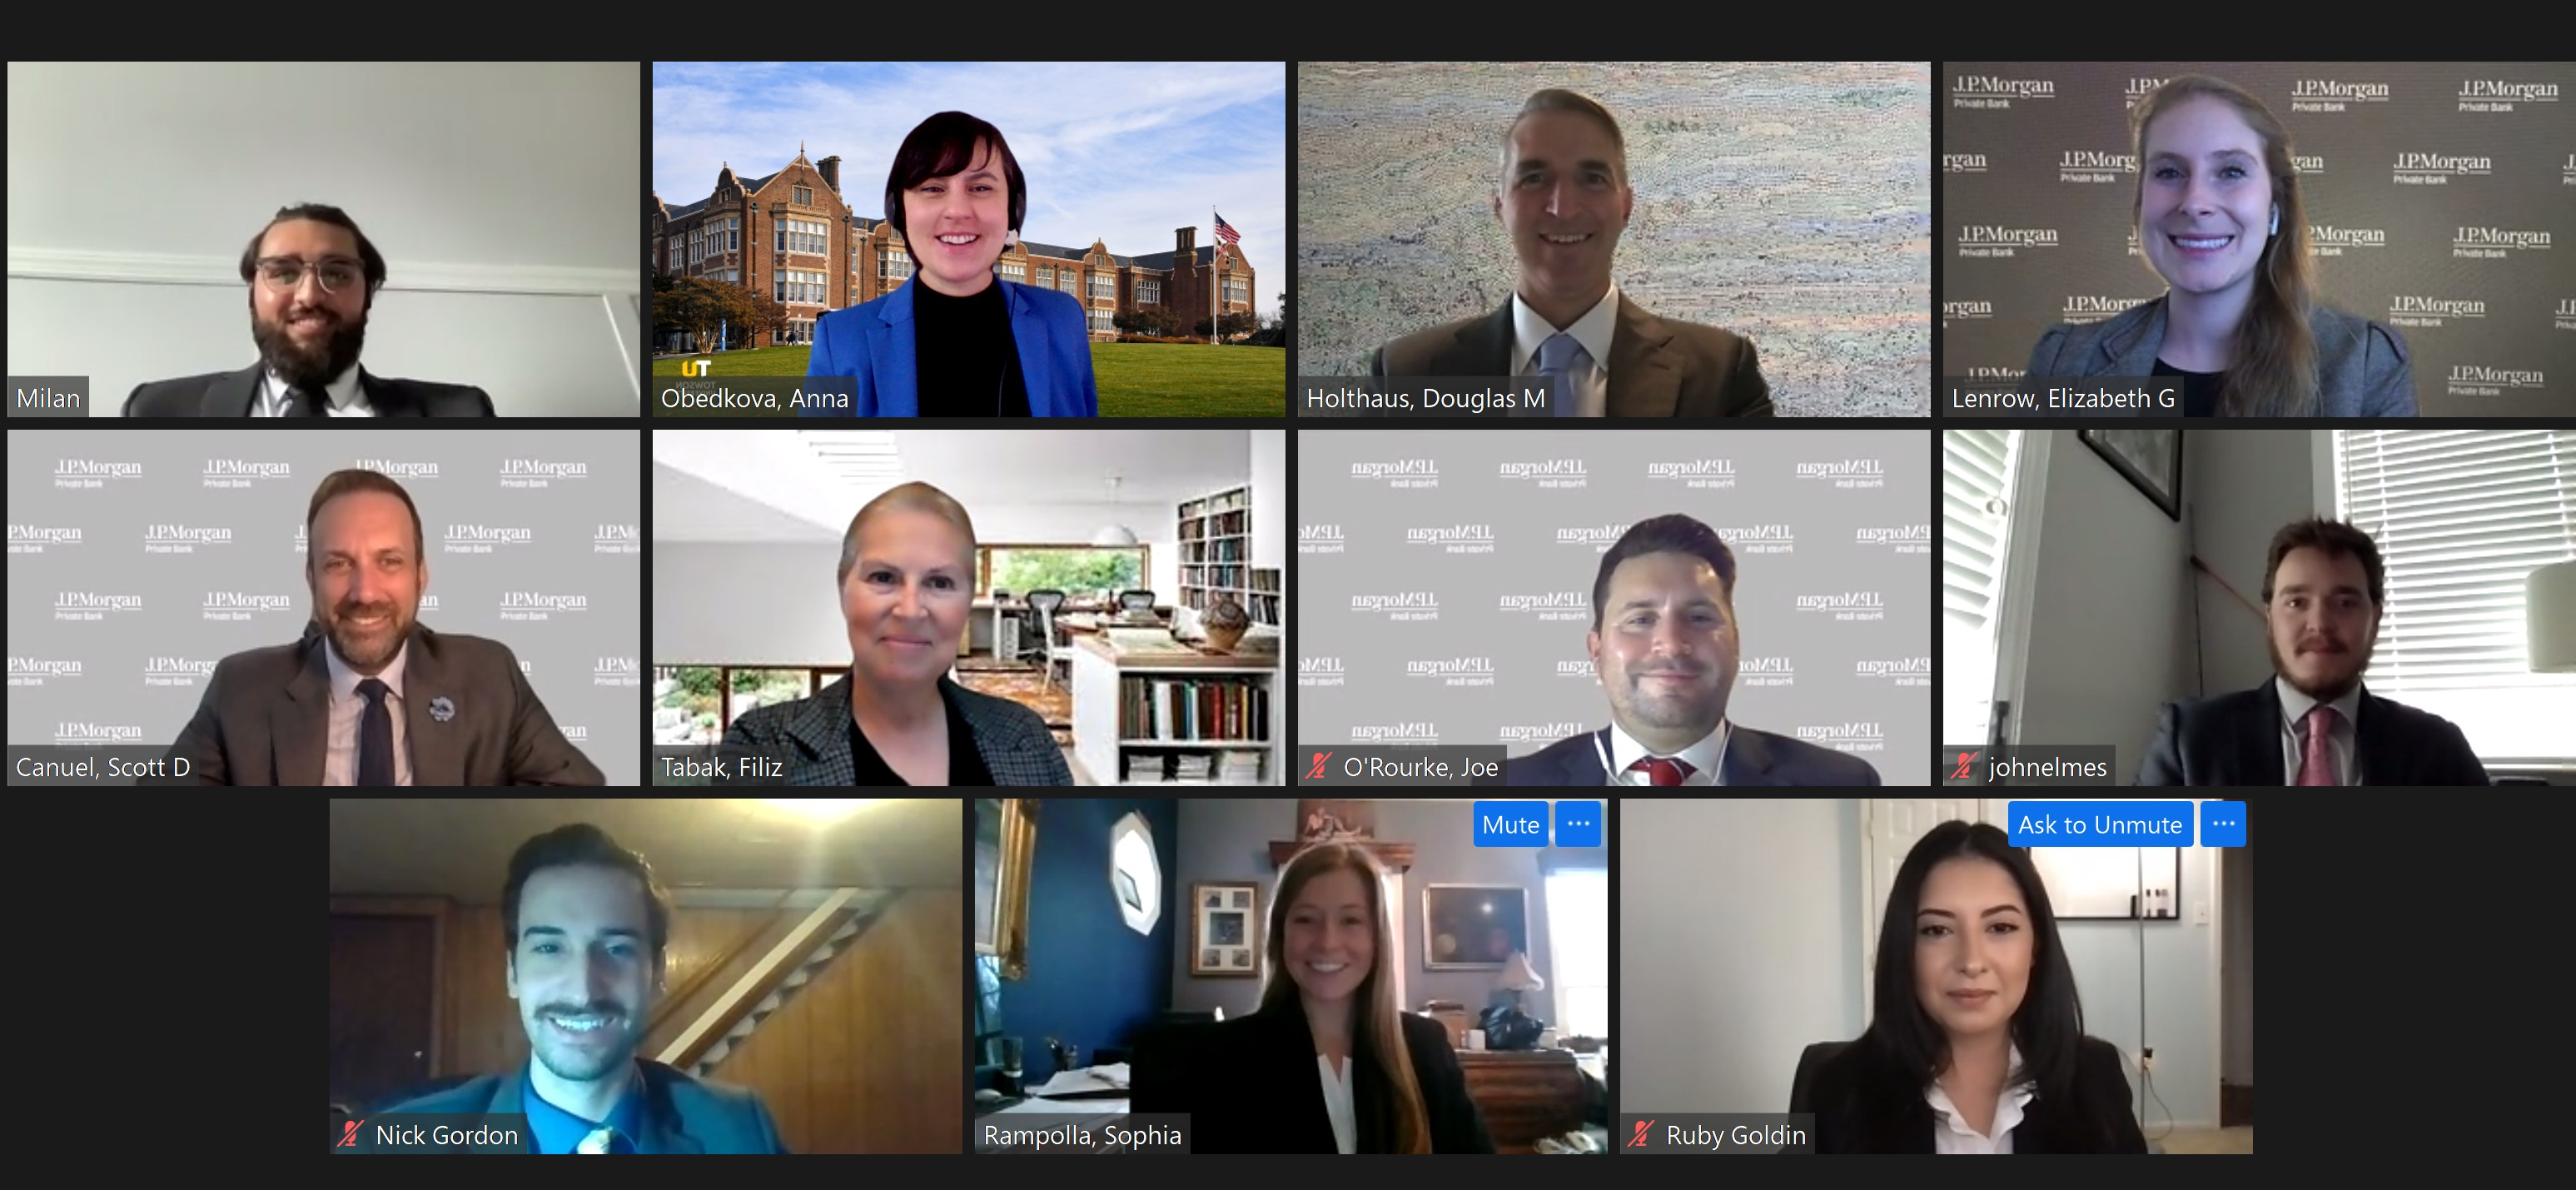 Image of several people from J.P. Morgan and Towson University on a Zoom call.